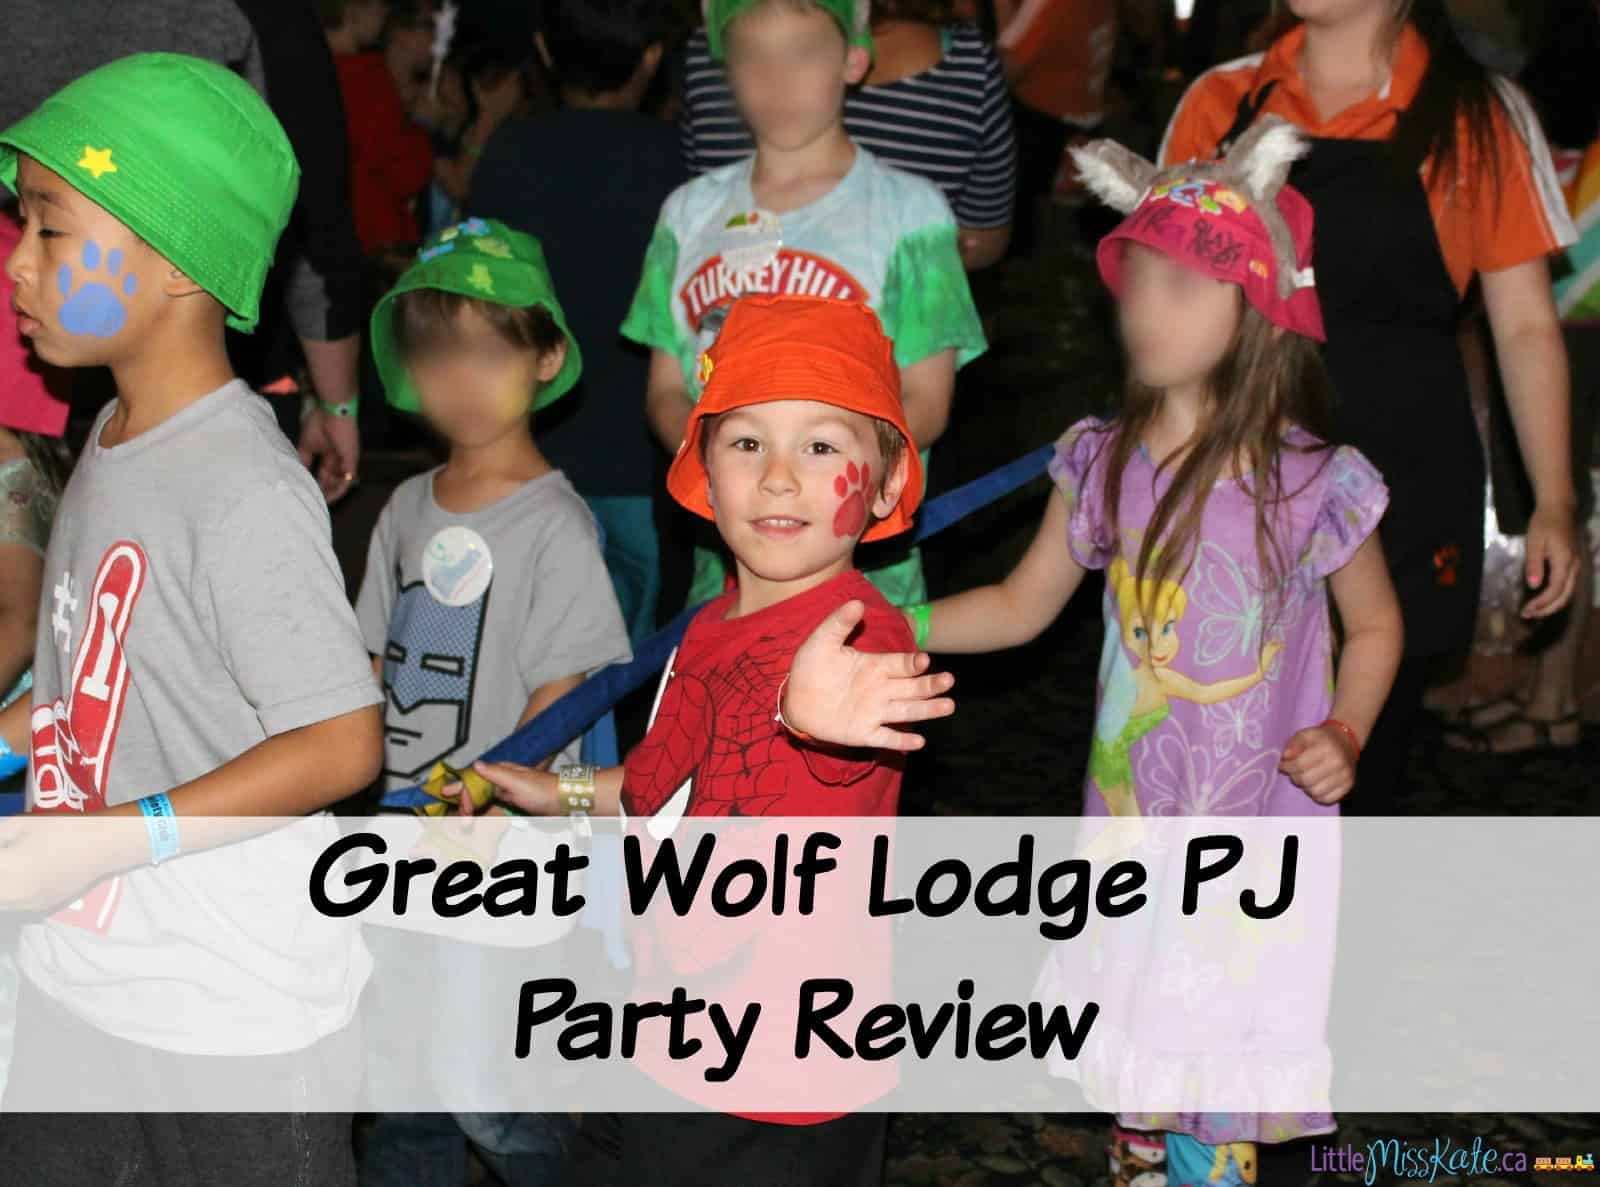 Great Wolf Lodge PJ Party Review